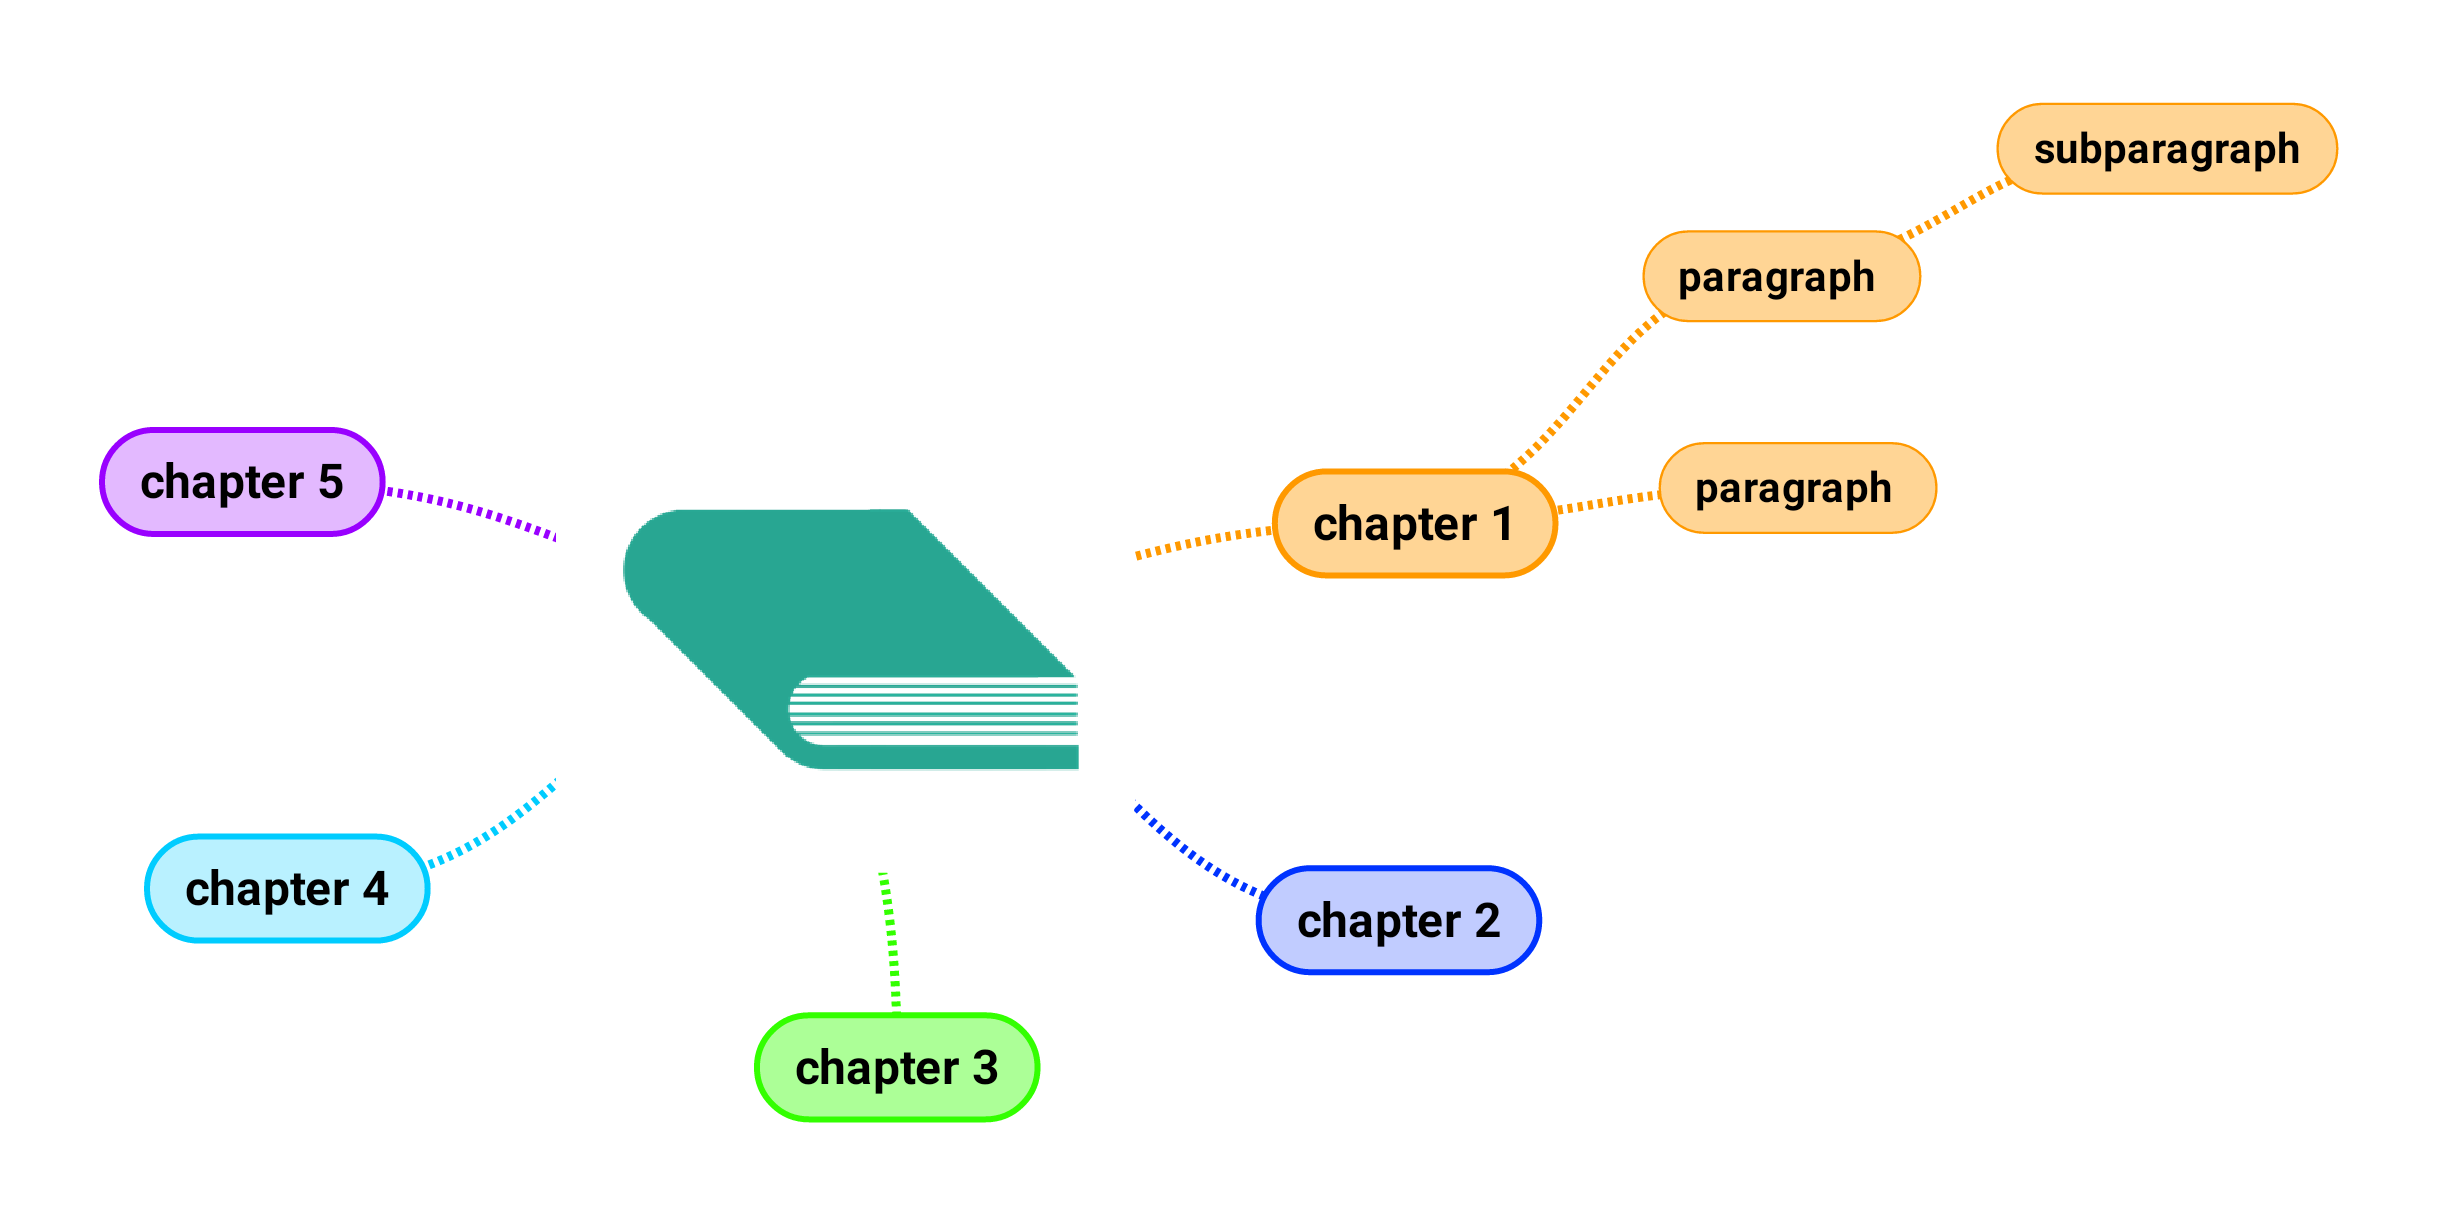 Image of a book connected to chapters, paragraph and subparagraph